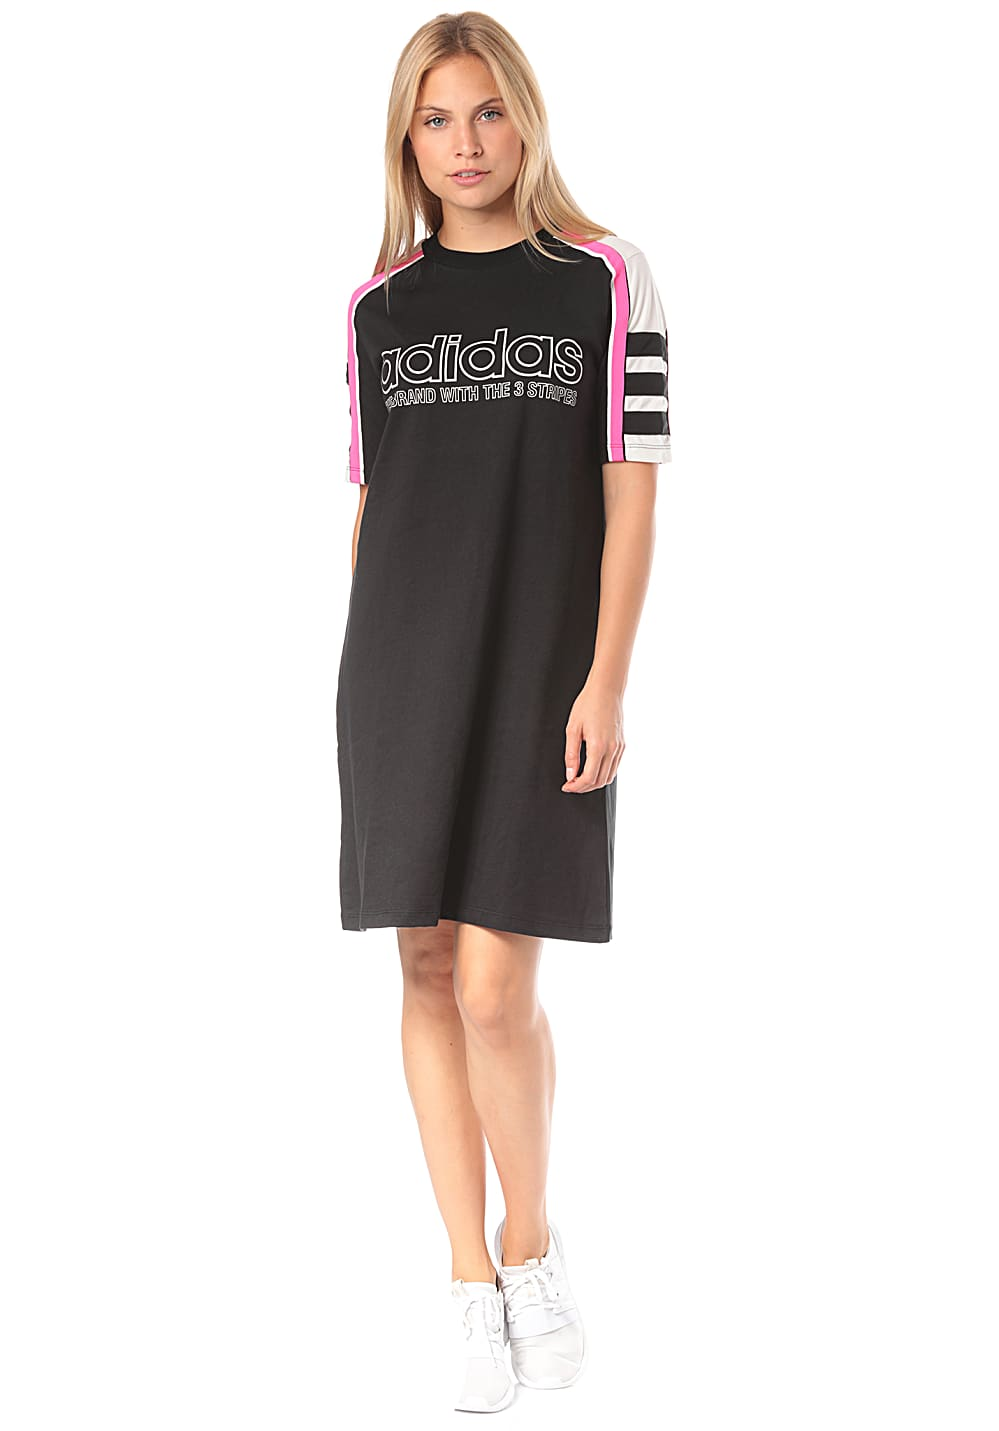 86d32477cb2 ADIDAS ORIGINALS Tee - Dress for Women - Black - Planet Sports